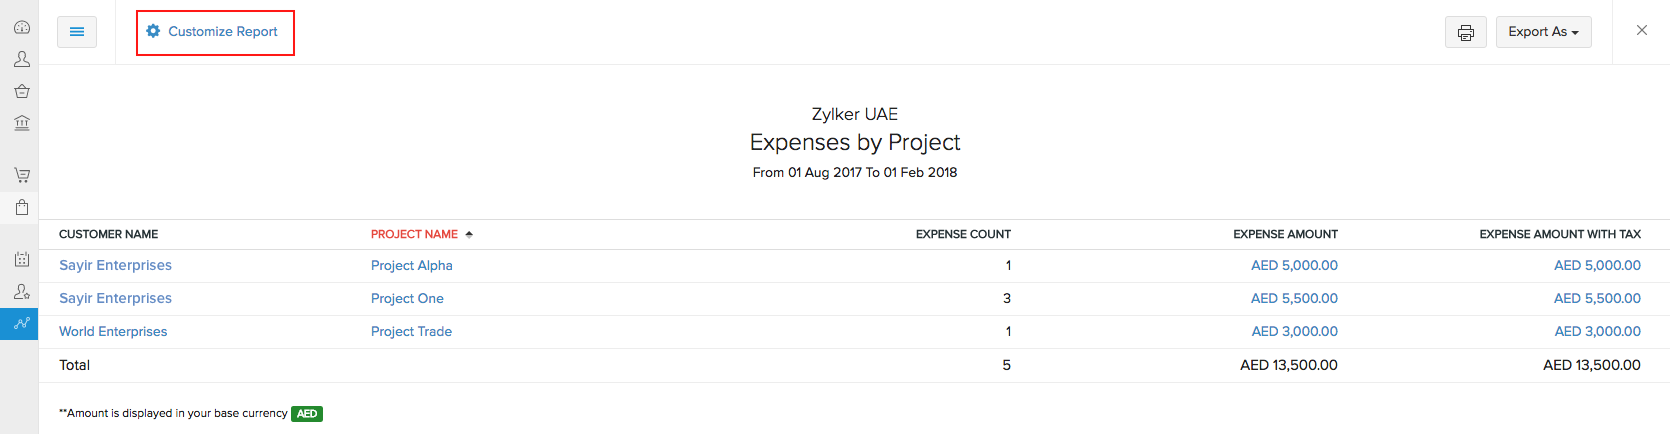 Expenses by project report